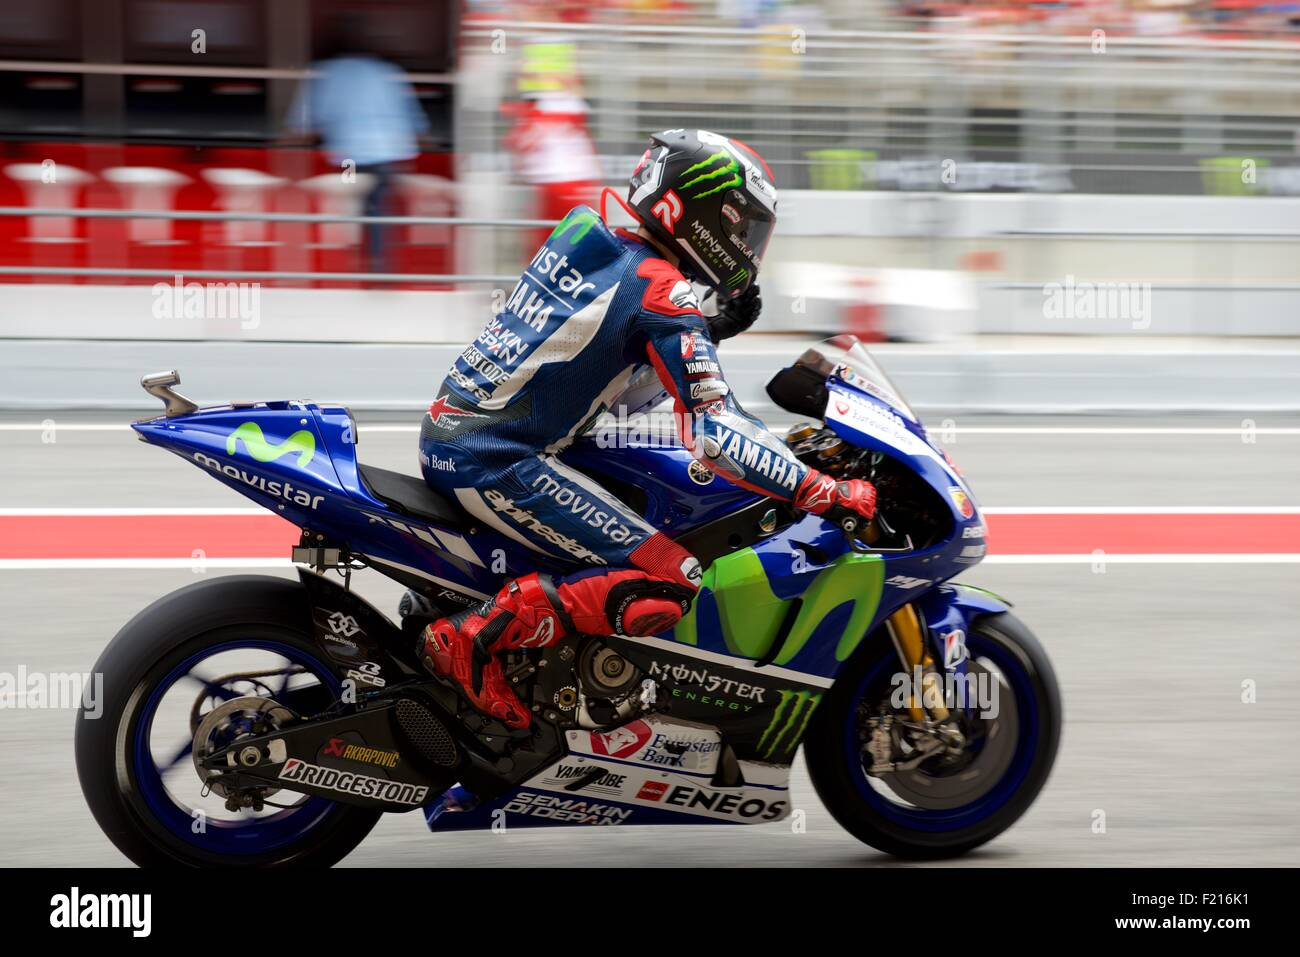 Circuit De Catalunya, Spain 13th June 2015. Movistar Yamaha rider Jorge Lorenzo leaving the pit lane during qualifying - Stock Image